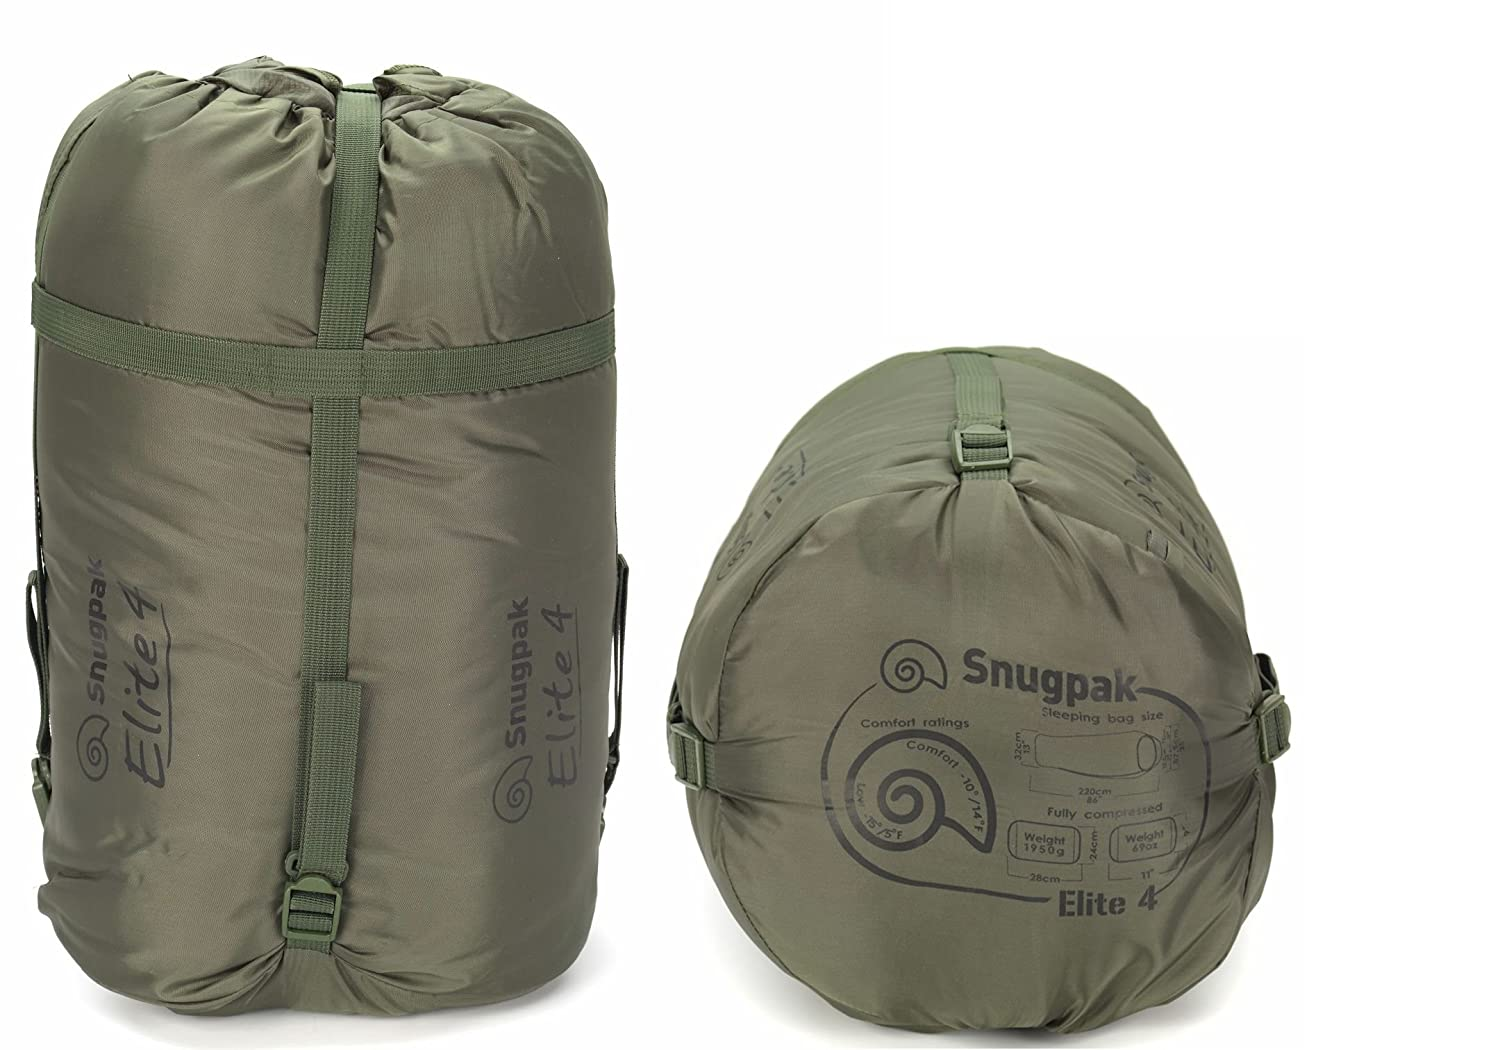 low priced b3eee efbc3 Softie / elite 4 /sleeping bag / snugpak/ military sleeping bags / cadet  sleeping bags